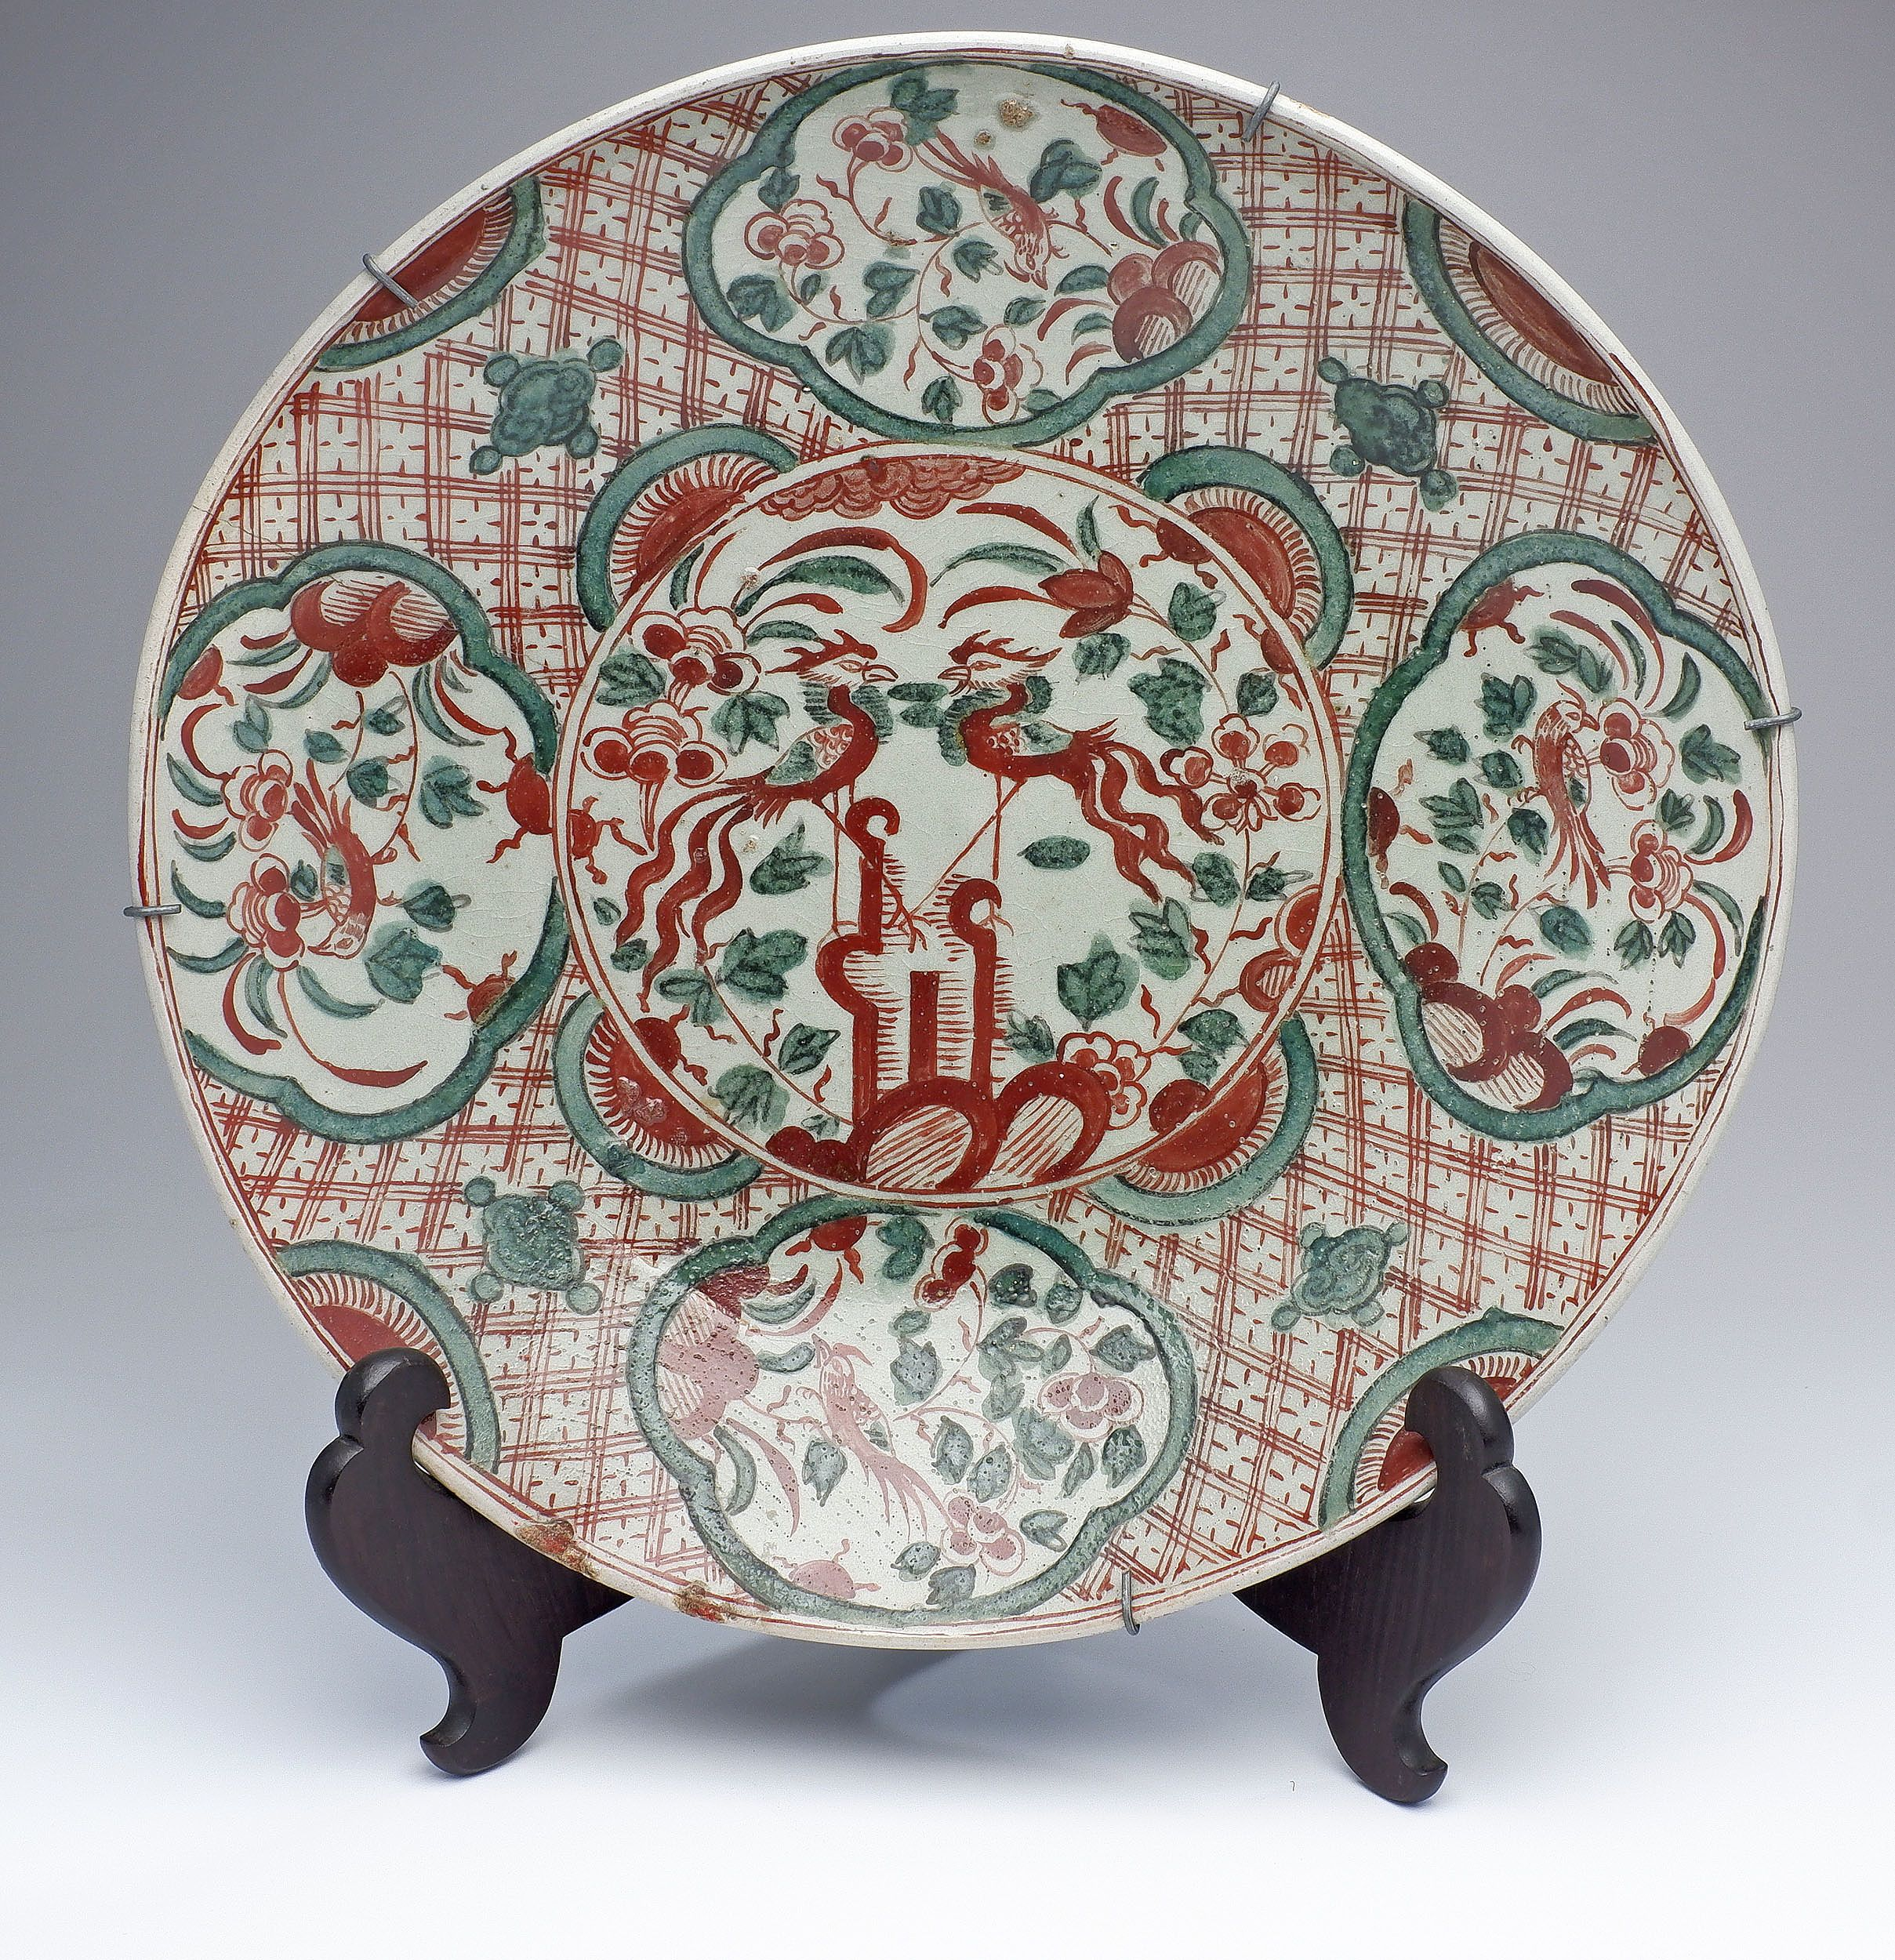 'Chinese Late Ming Zhangzhou Swatow Ware Large Dish Decorated with Phoenix and Birds, Late 16th/17th Century'